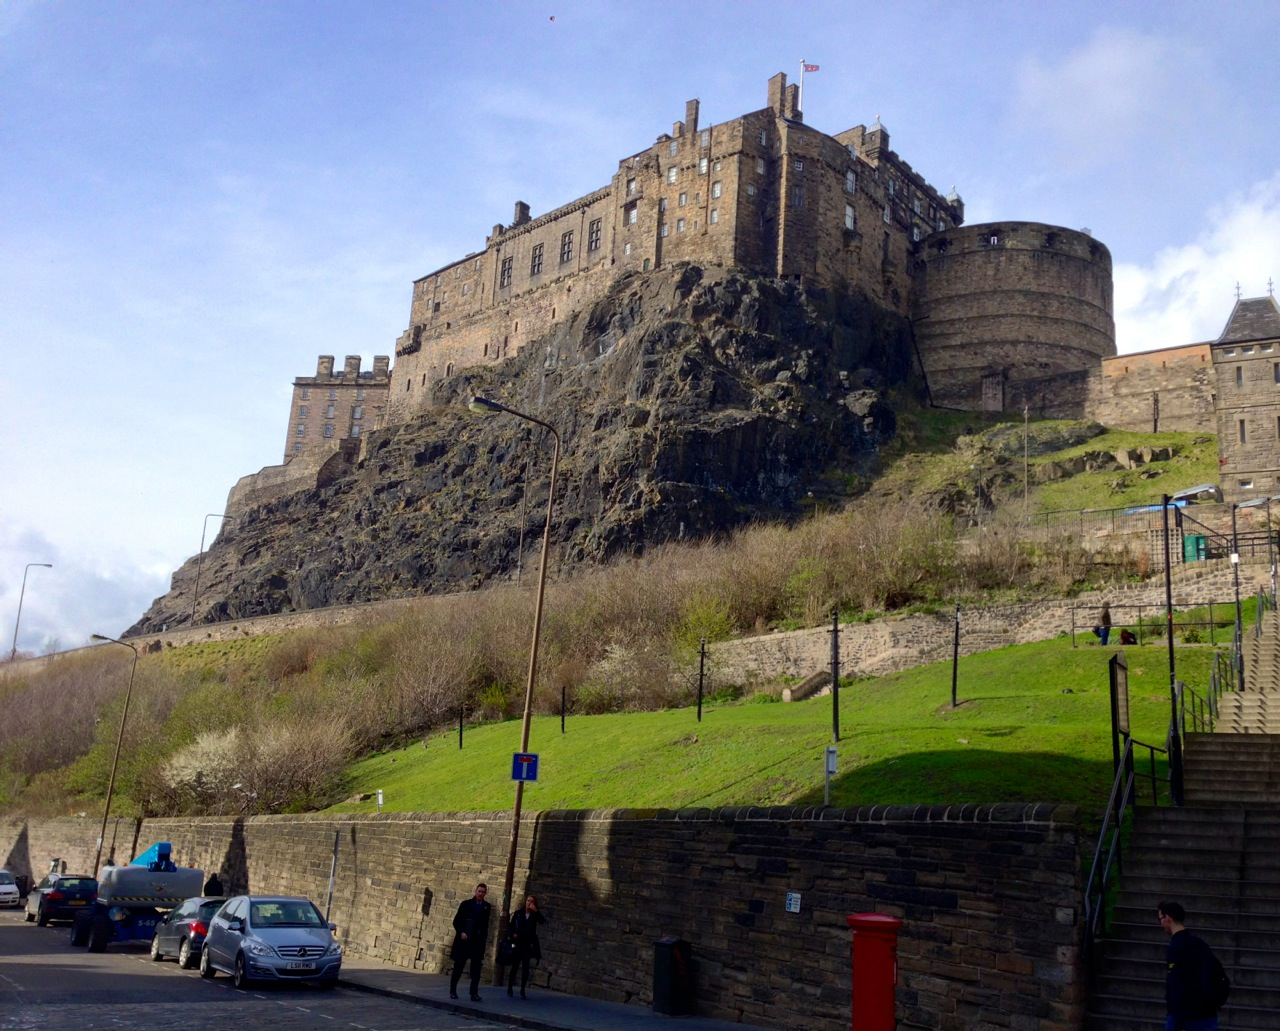 Edinburgh Castle, as seen just below Castle Rock Hostel